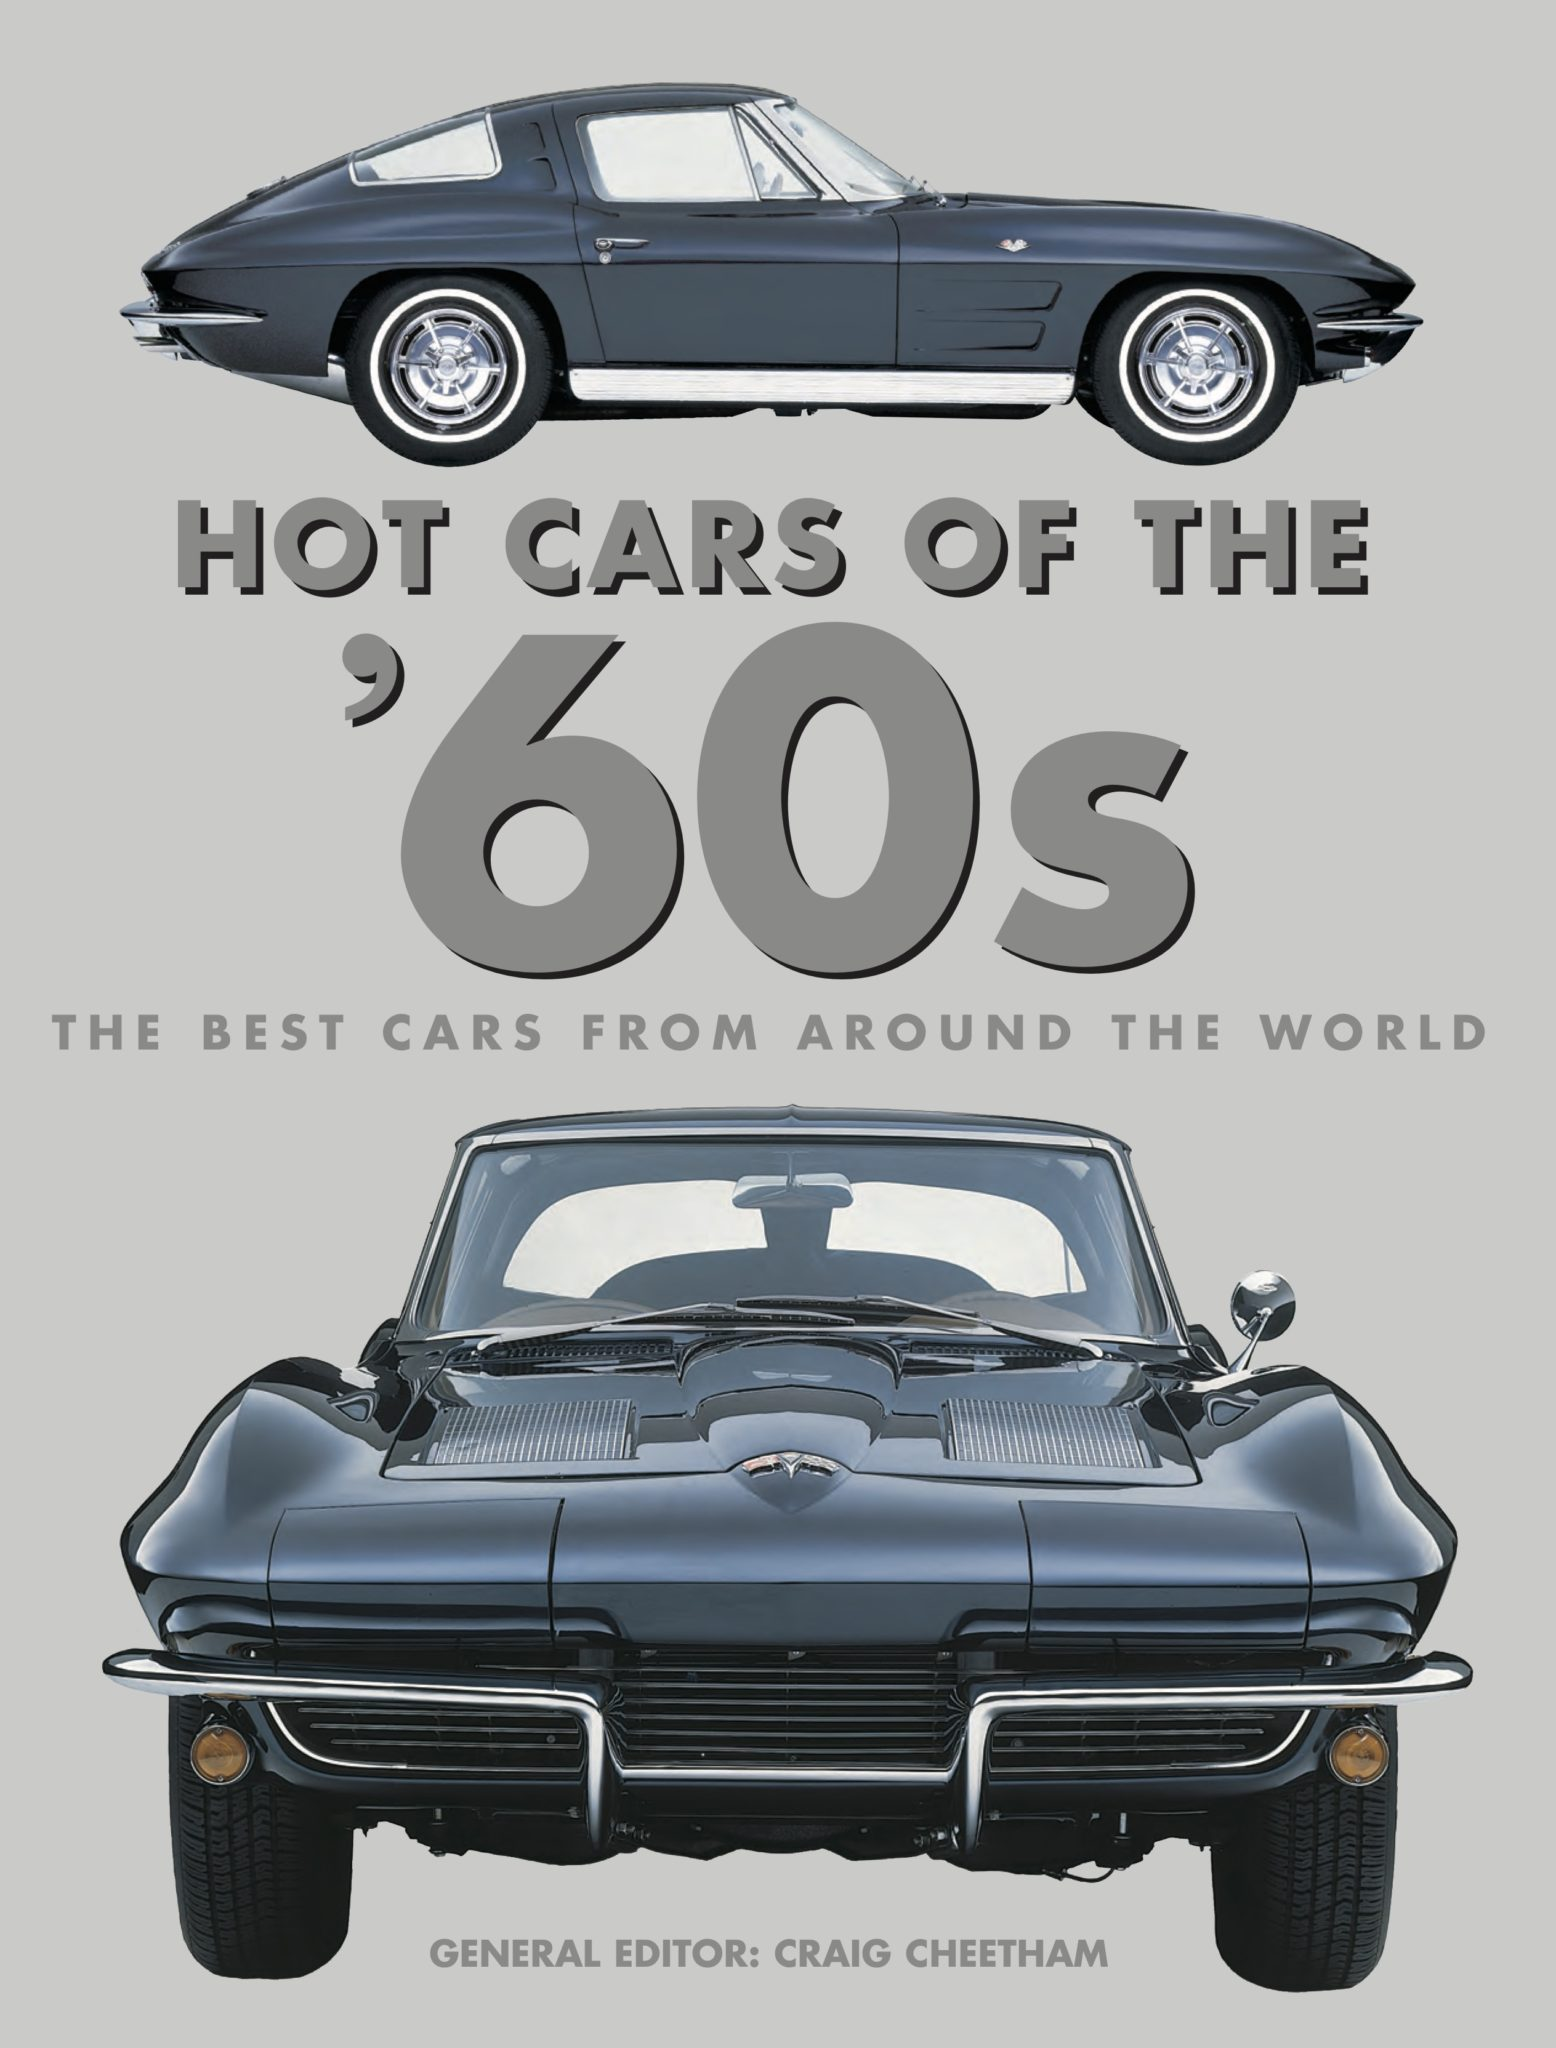 Hot Cars of the 60s